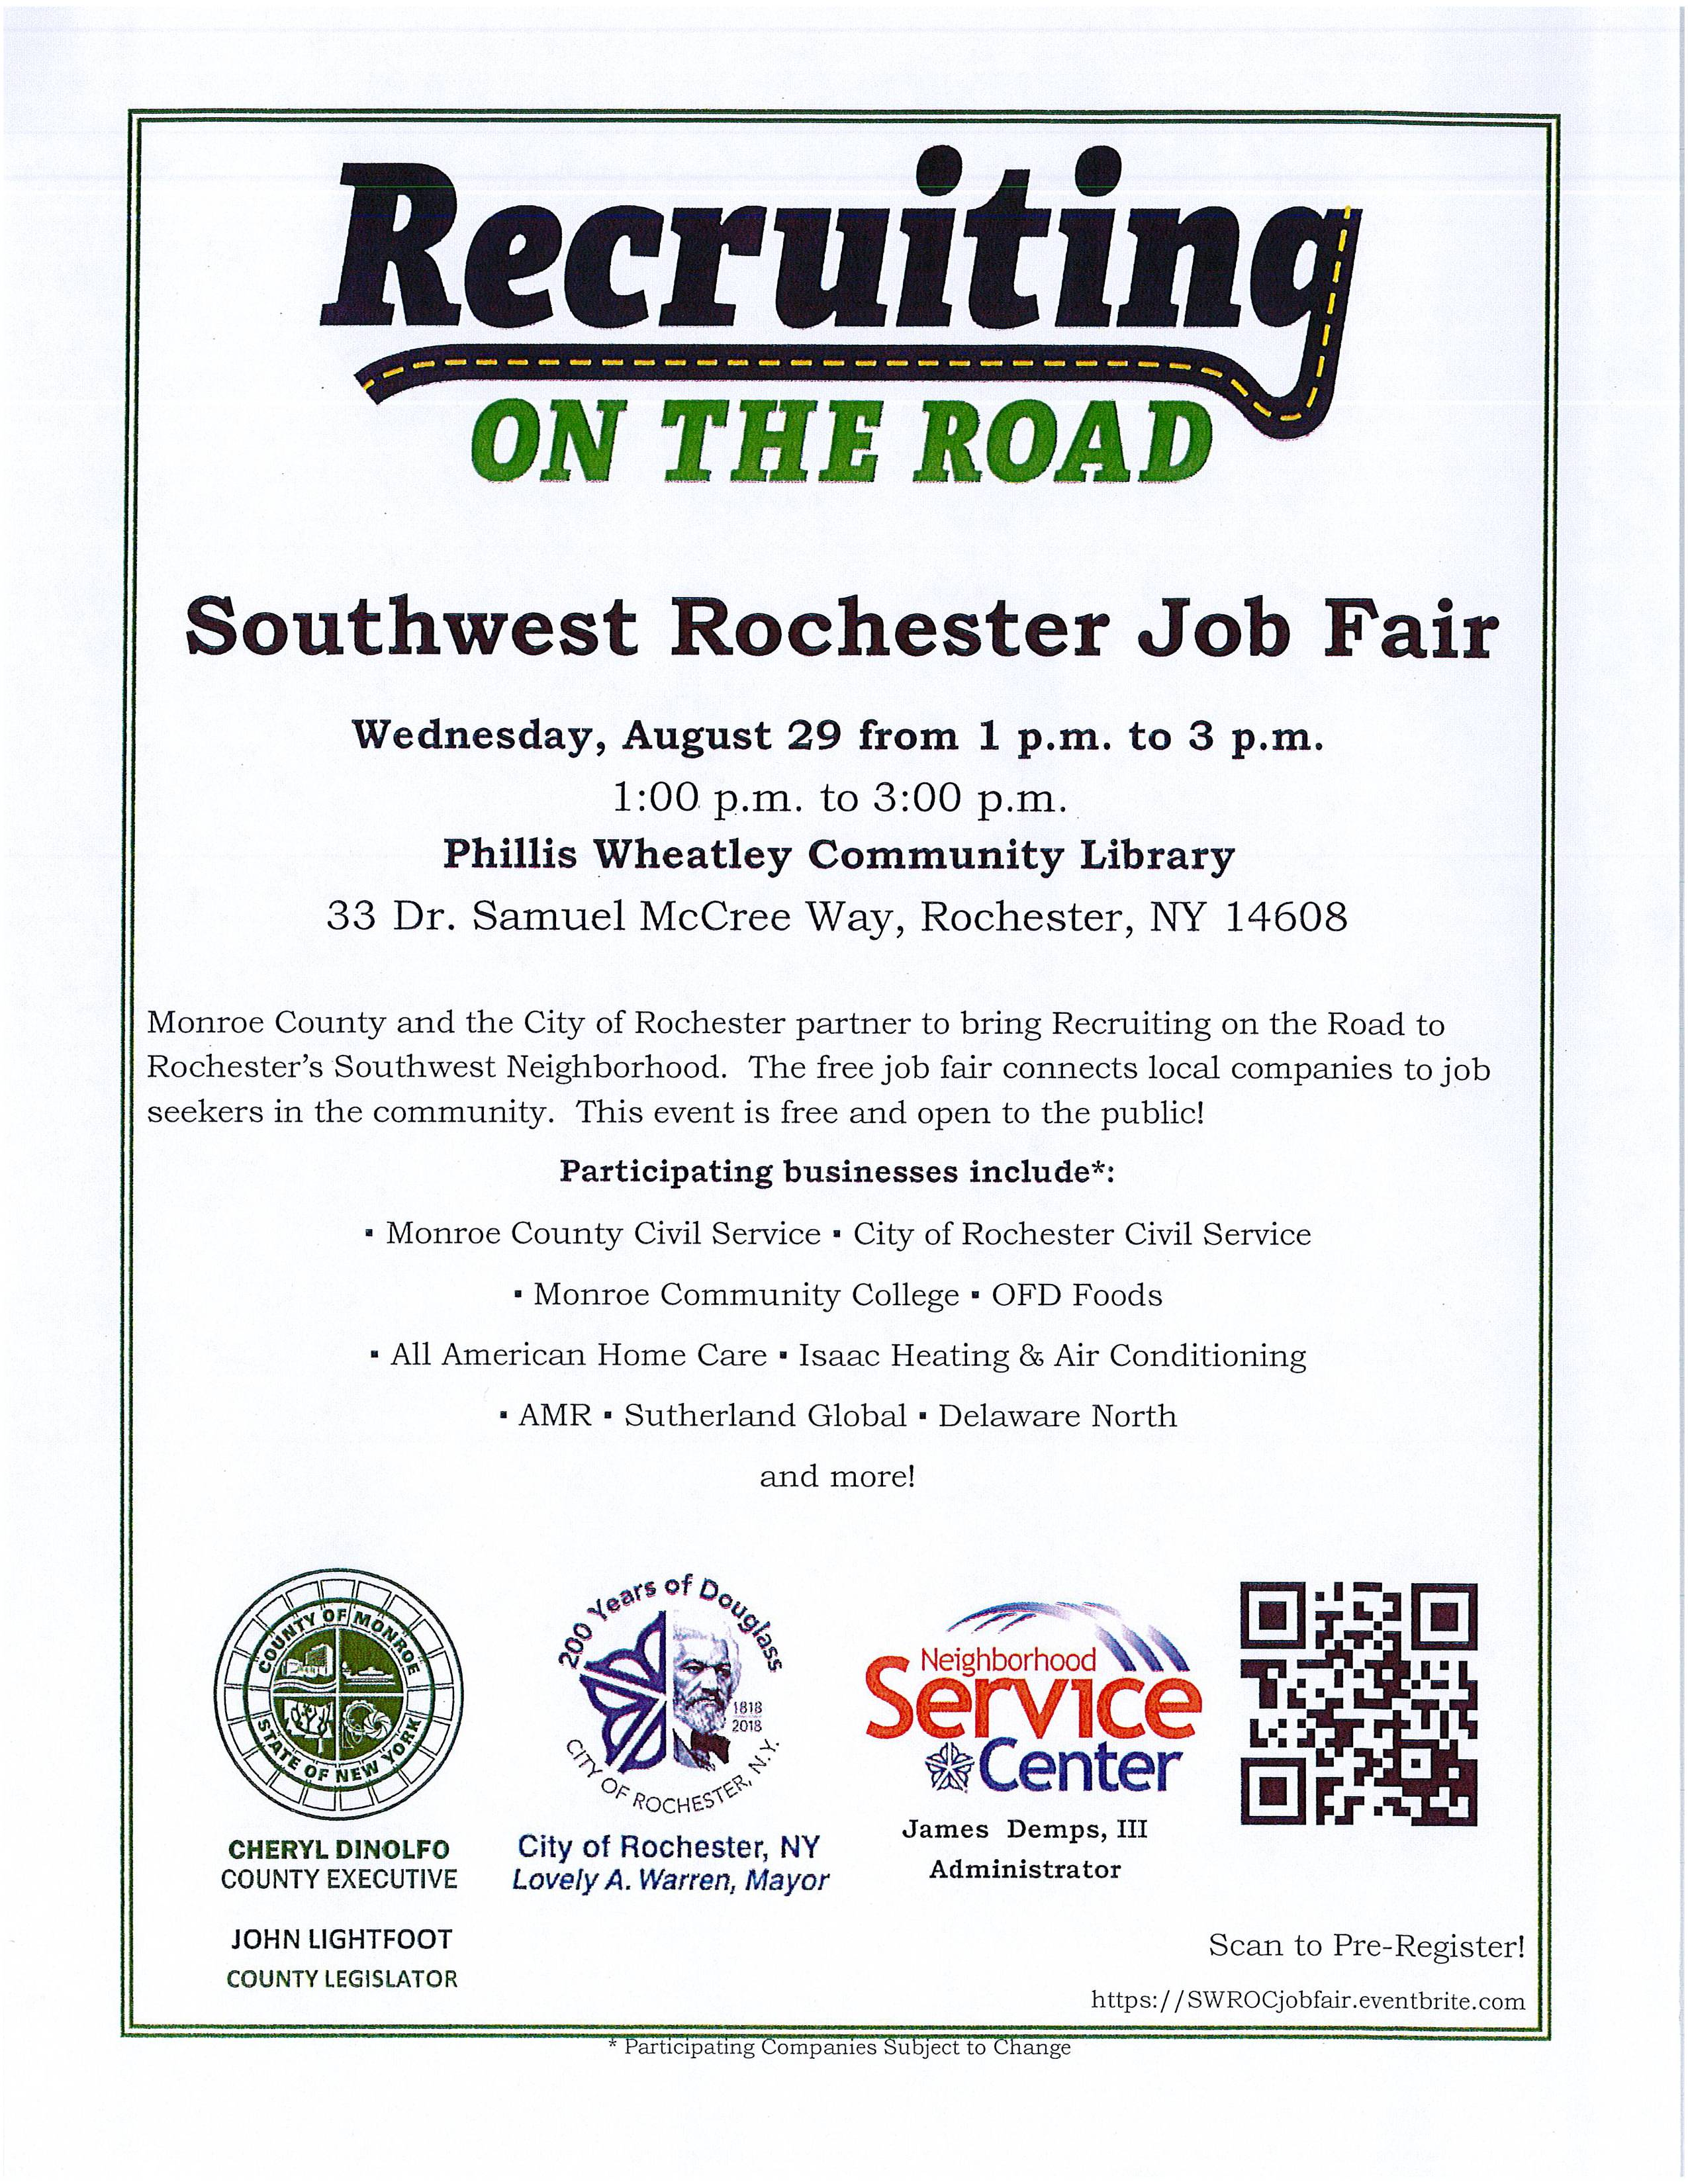 Recruiting on the Road South West Job Fair (1)